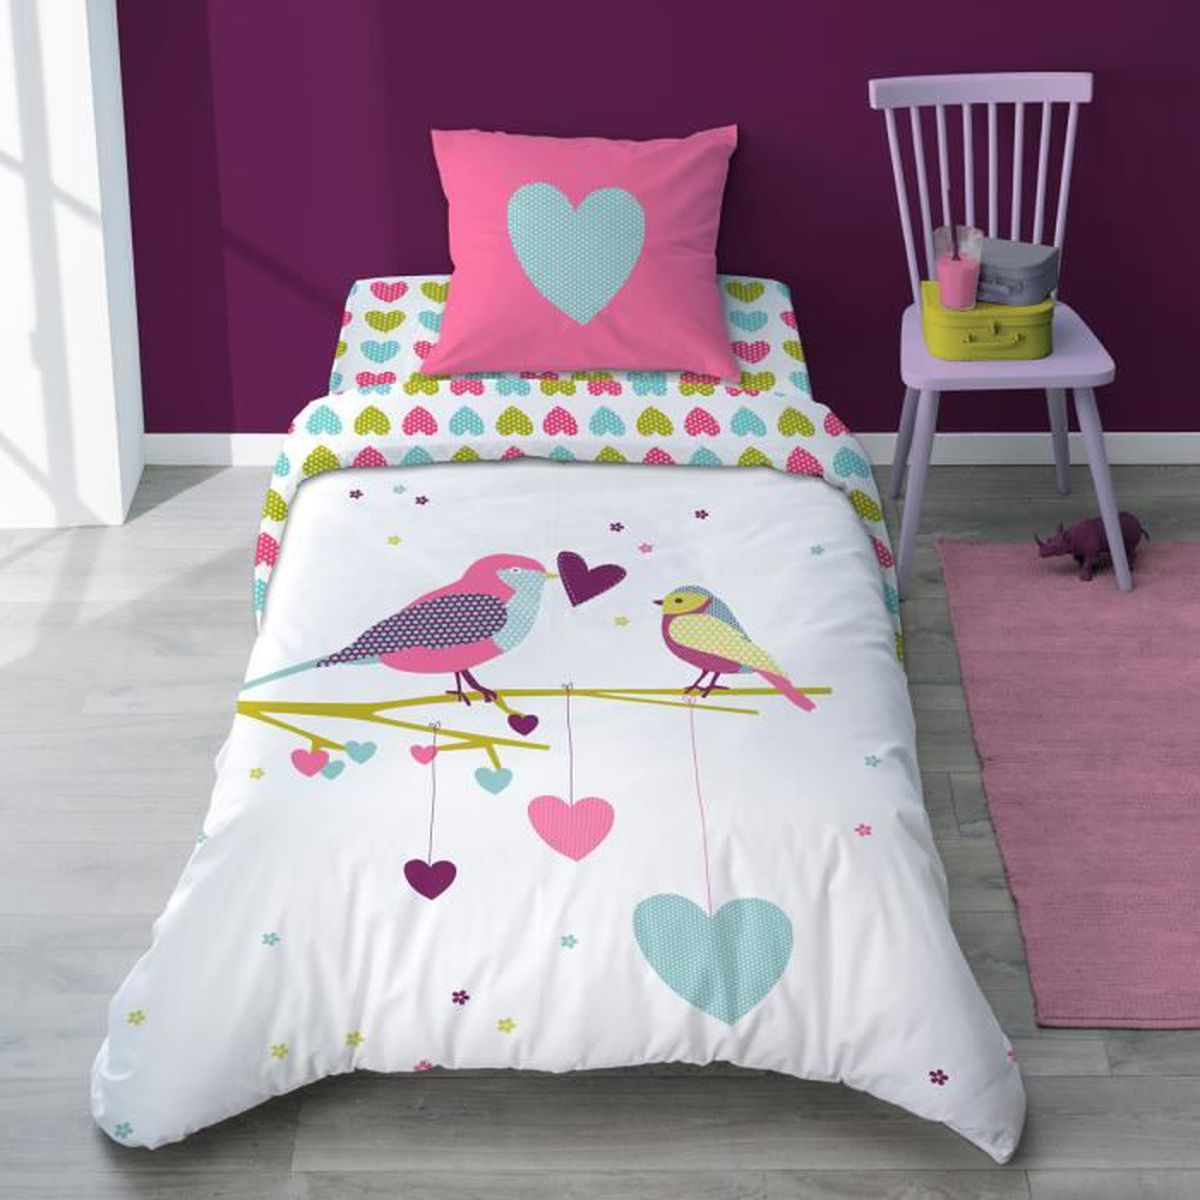 housse de couette fille oiseau printemps achat vente. Black Bedroom Furniture Sets. Home Design Ideas